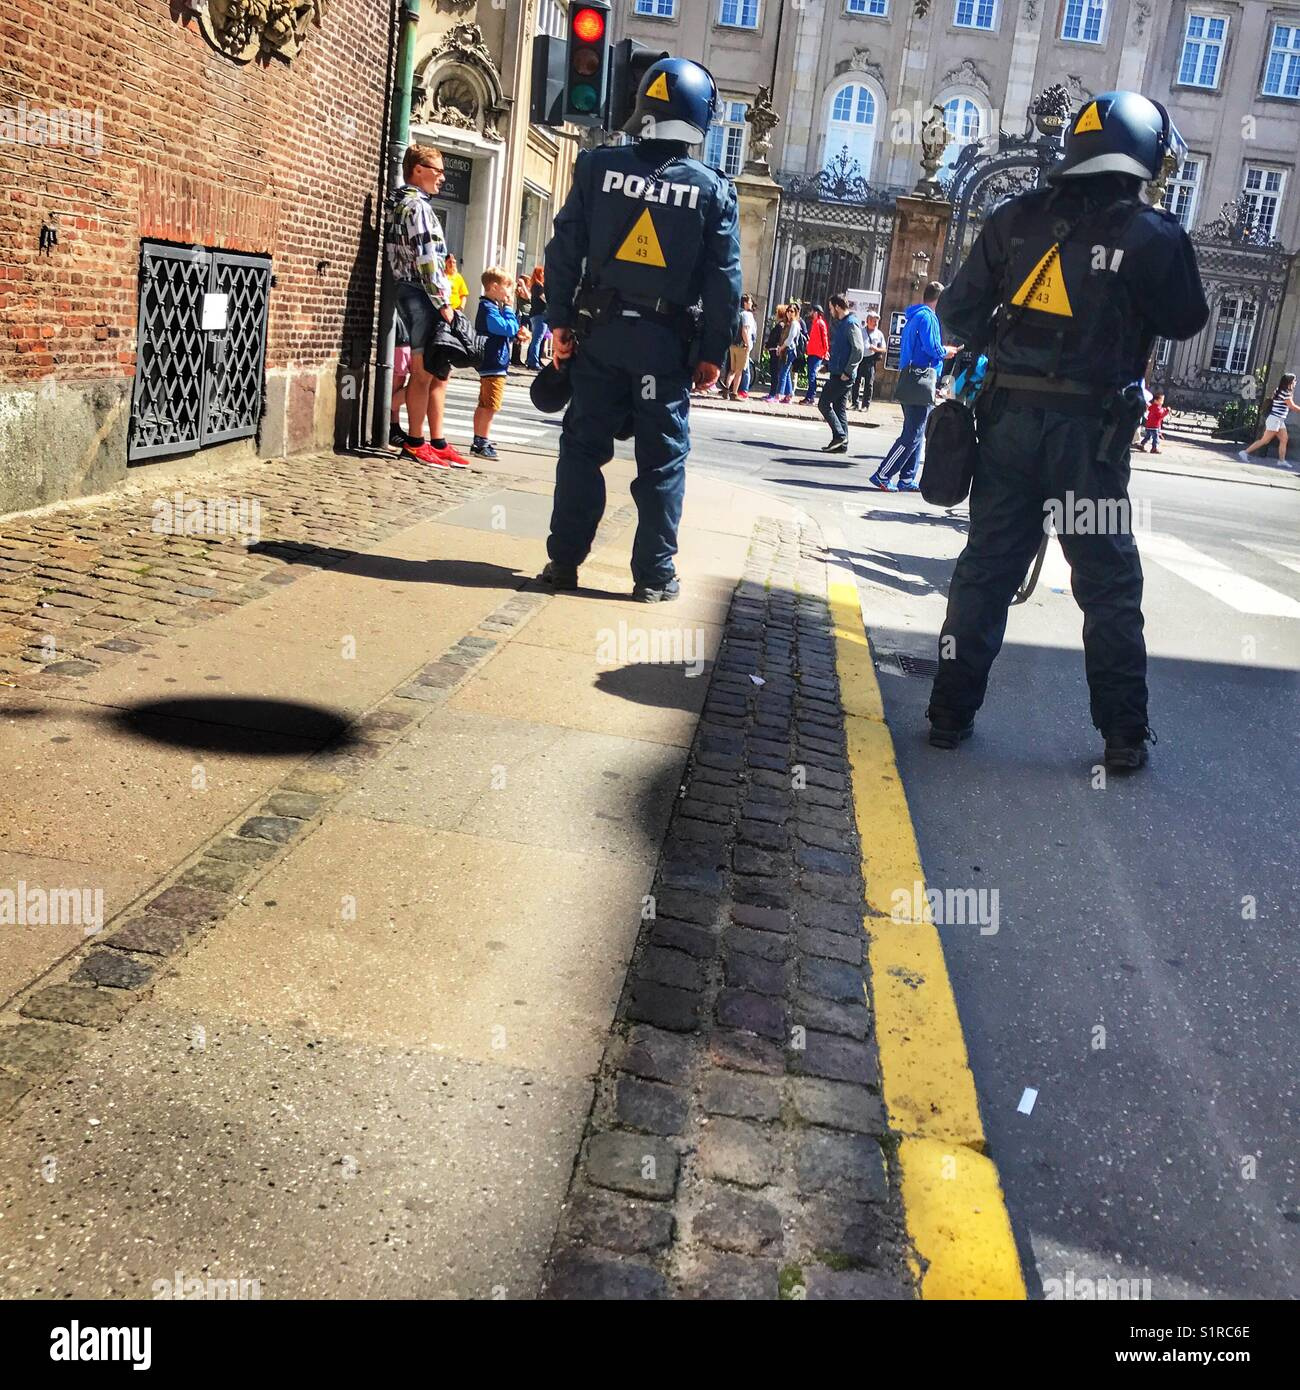 Two police officers keeping a close watch on football fans, Copenhagen, Denmark - Stock Image